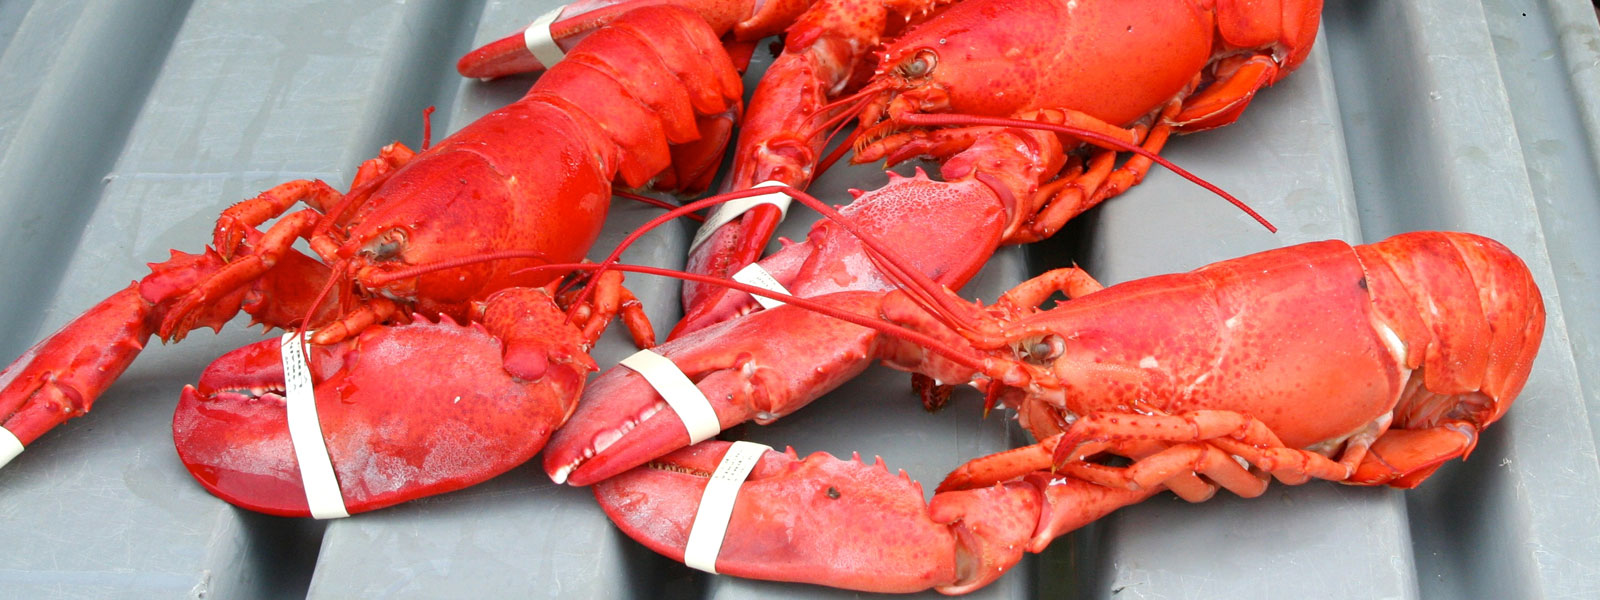 Maine Lobster Festival 2020.Maine Lobster Festival 73rd Annual Celebration Of All